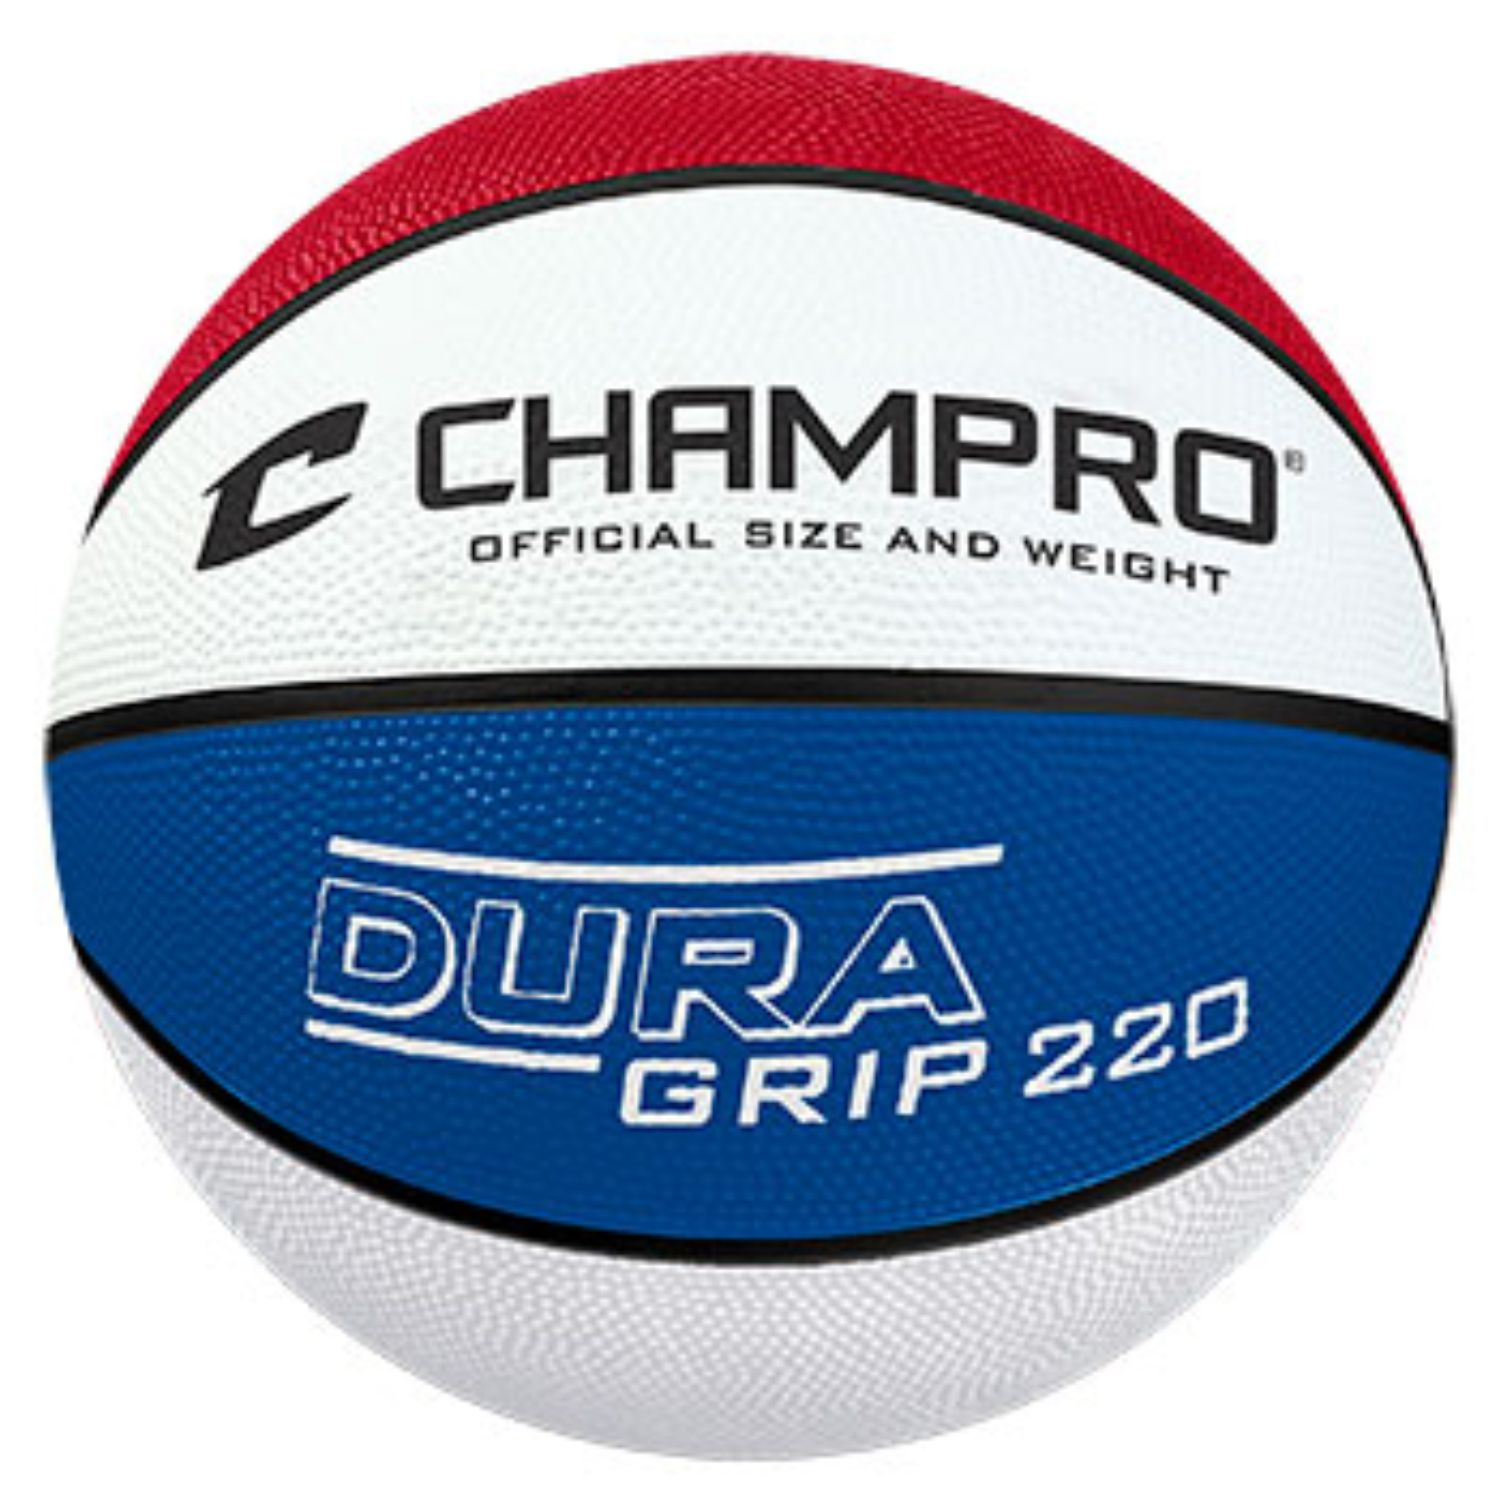 Champro Dura Grip 220 Official Size Basketball Red White Blu